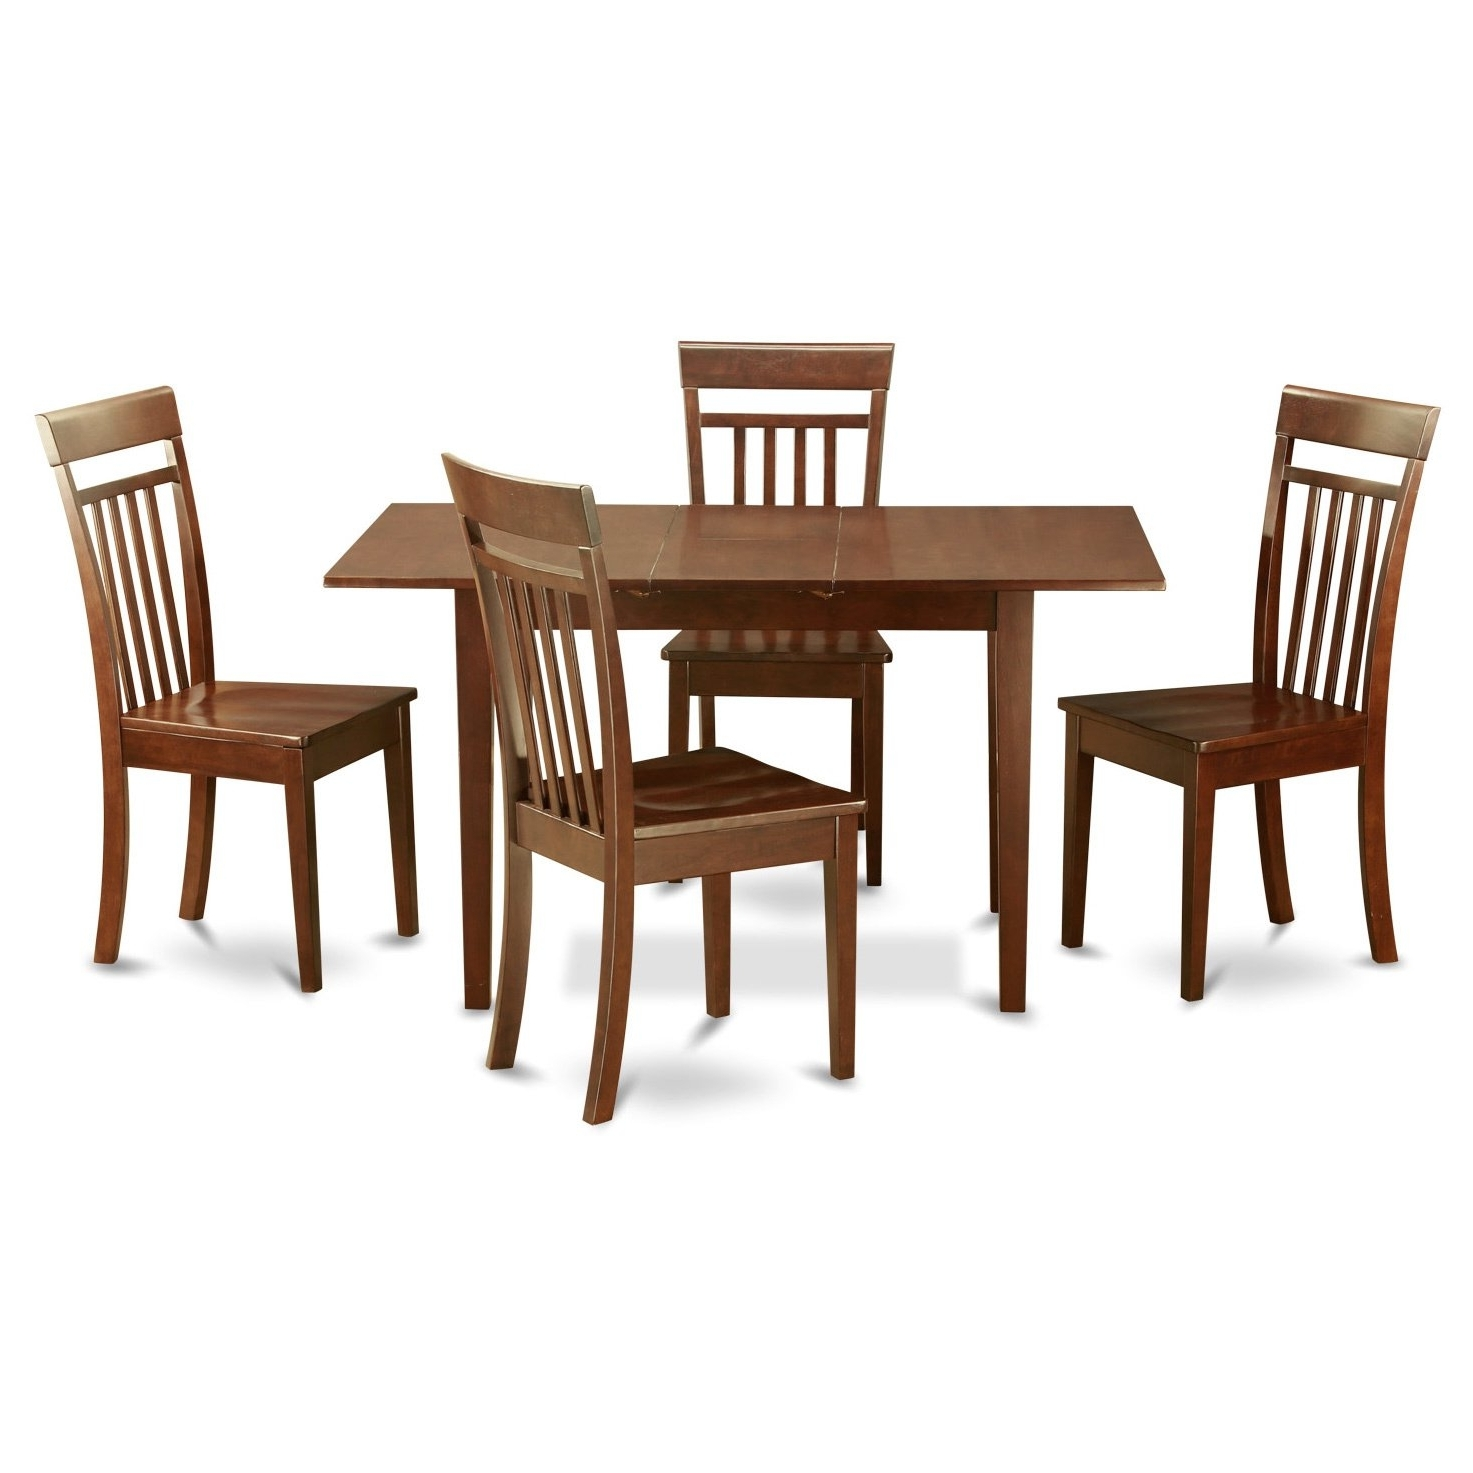 Mahogany Dining Tables And 4 Chairs Inside Recent Mahogany Dining Room Table And 4 Dining Room Chairs Chairs 5 Piece (View 12 of 25)